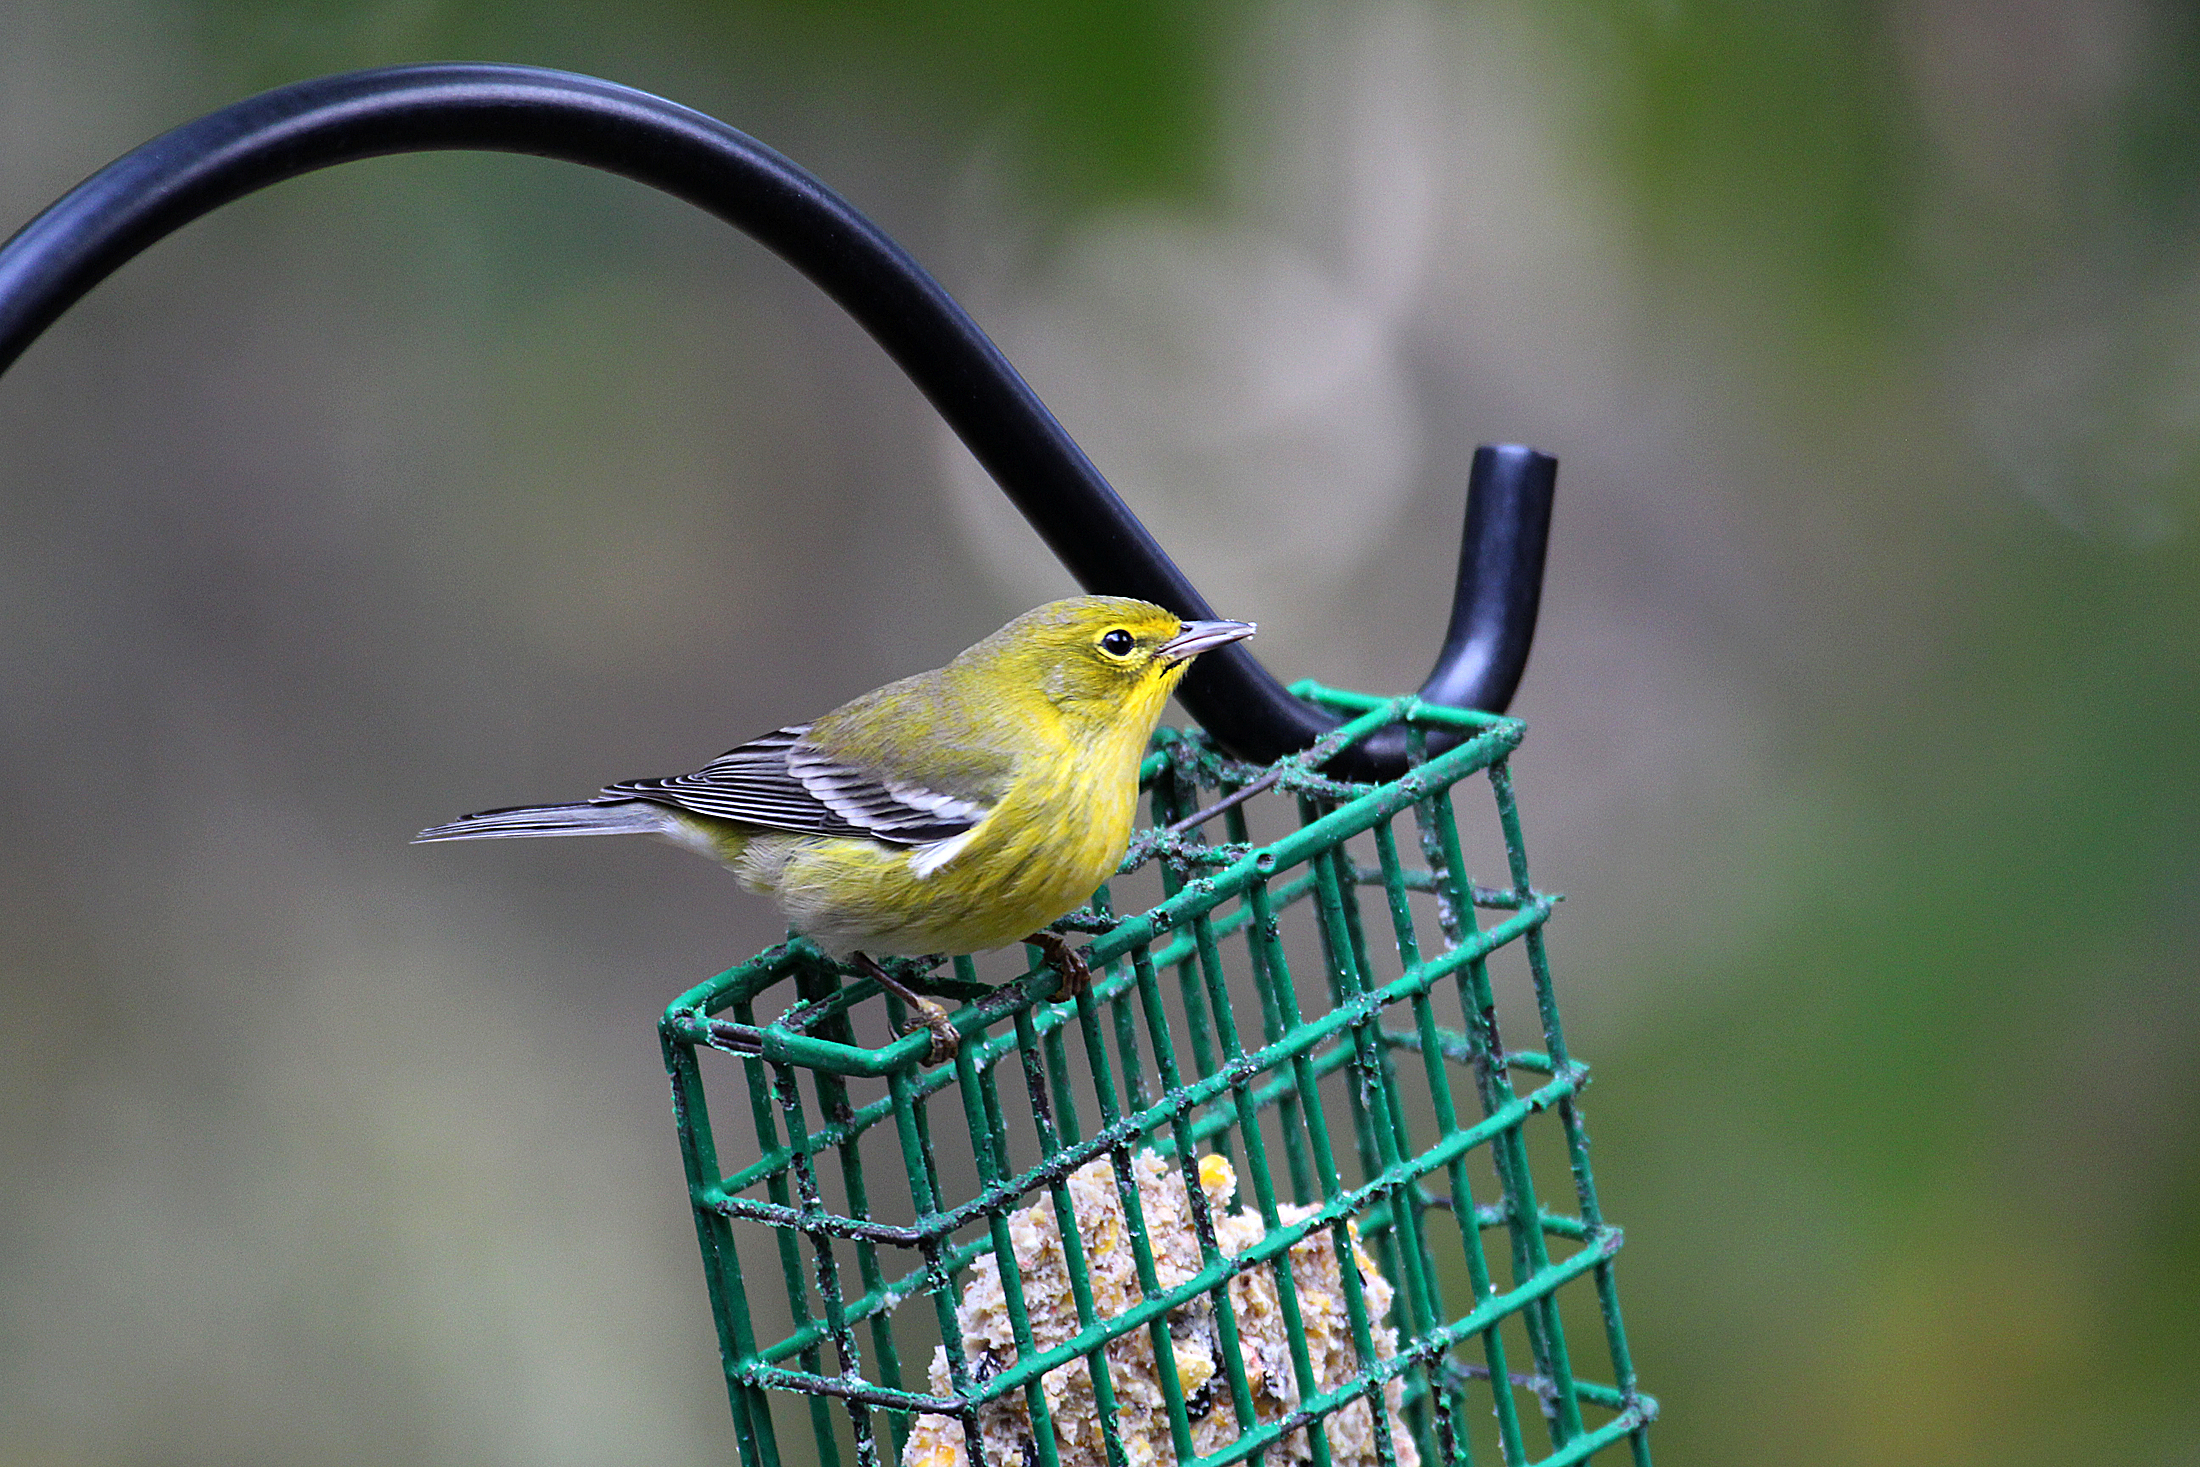 Photo by Chris Bosak A Pine Warbler visits a feeder in New England, fall 2015.